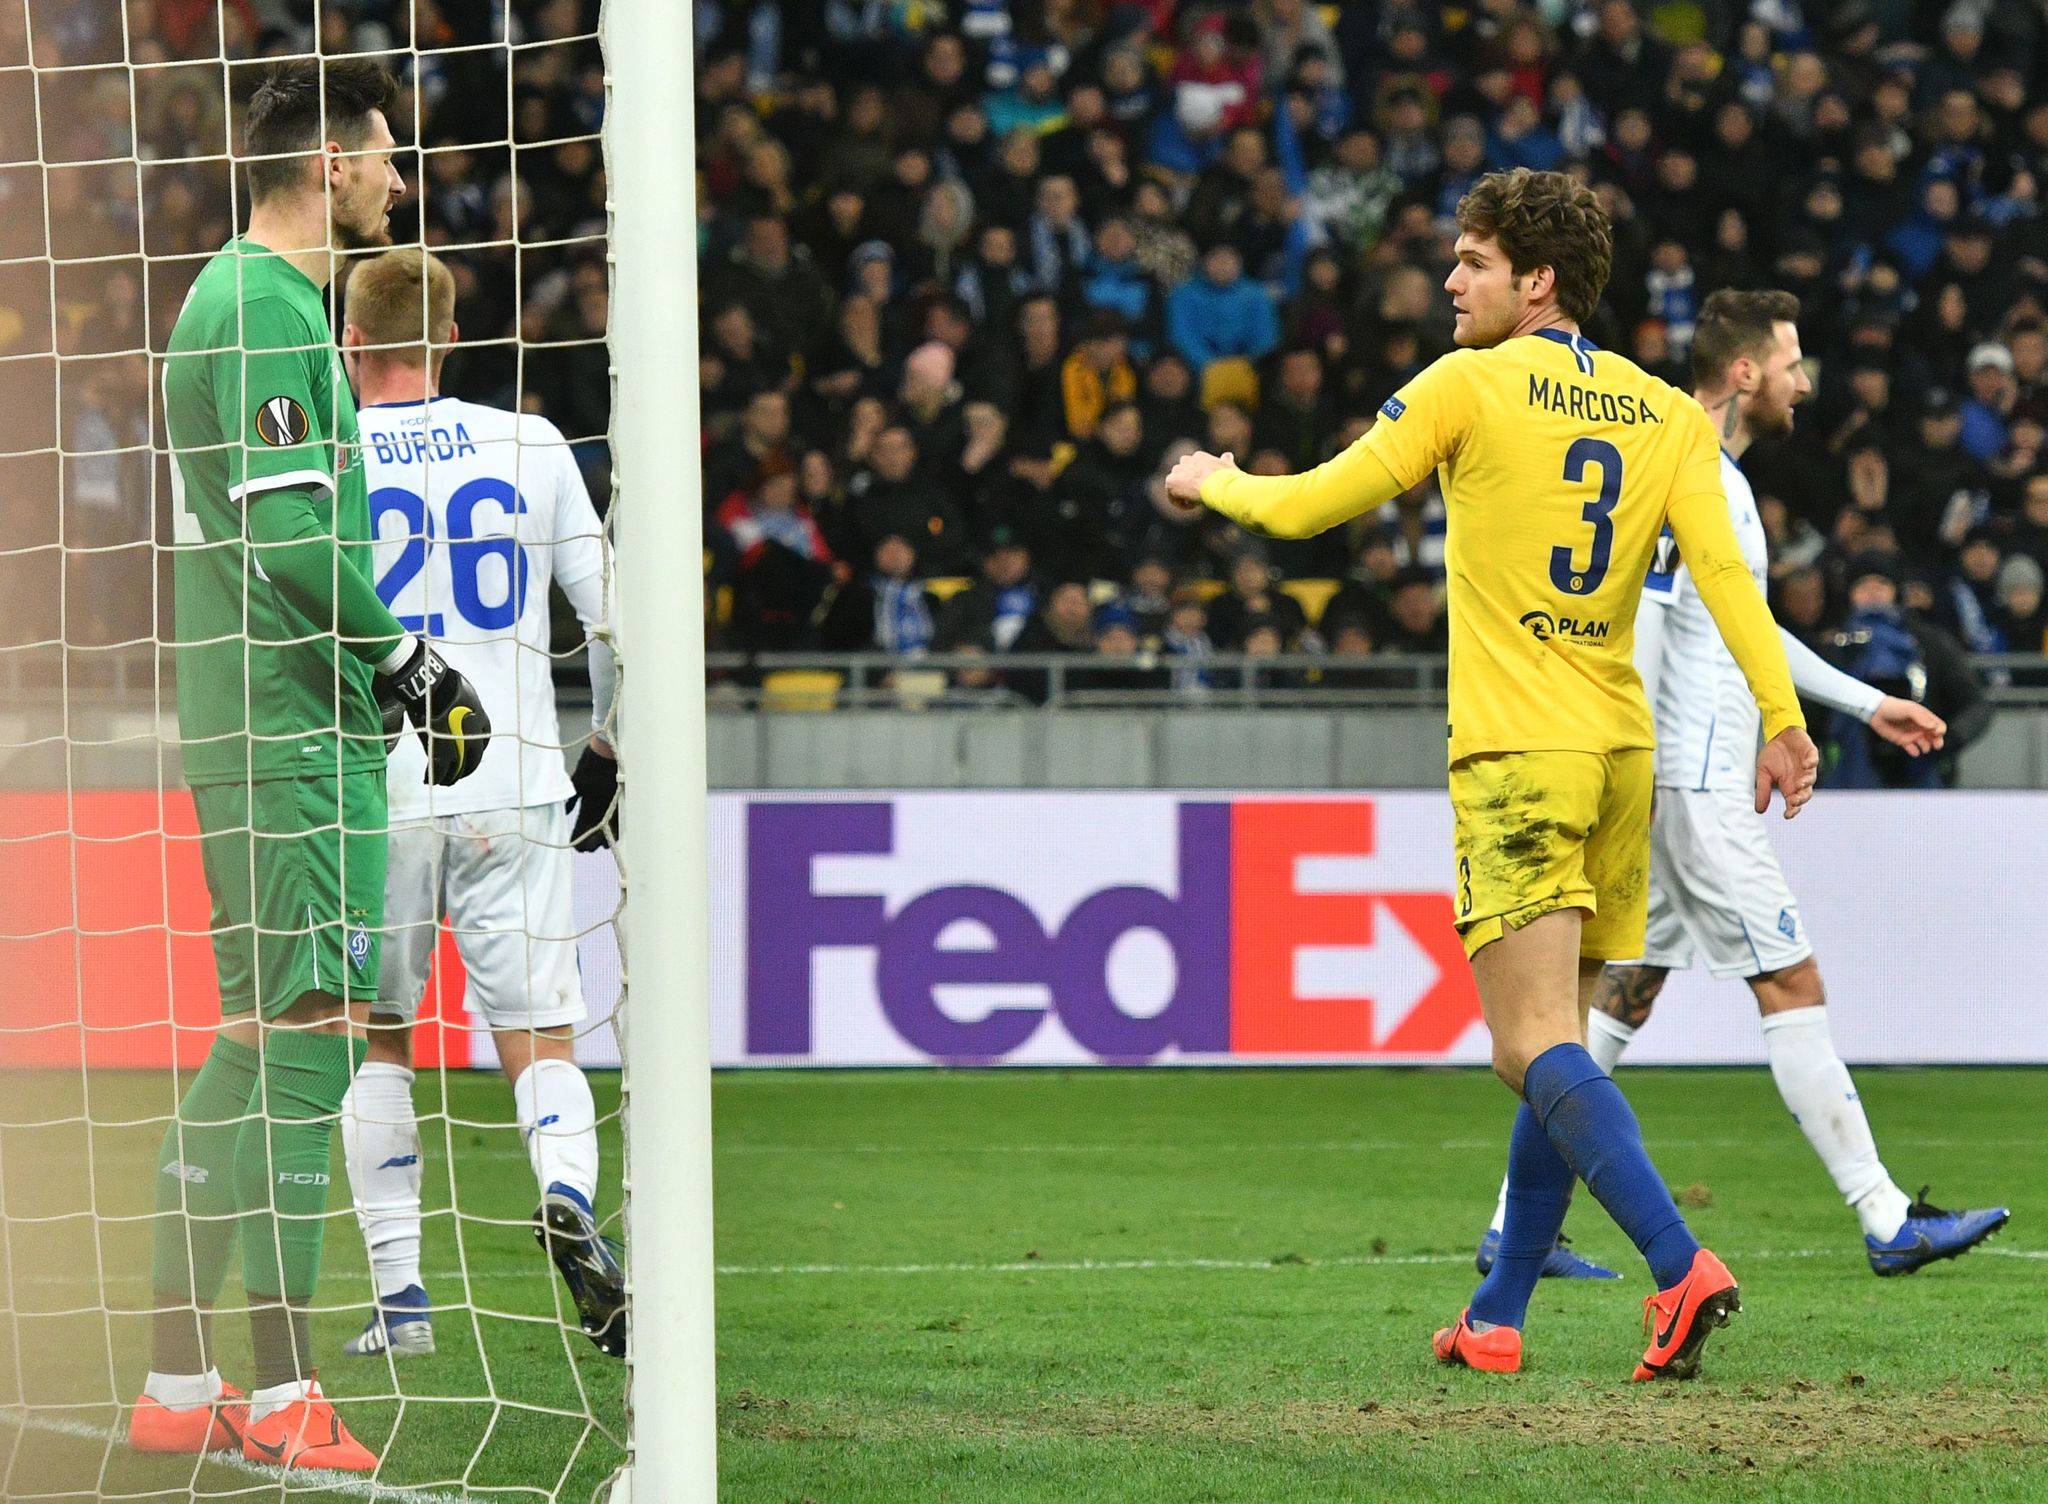 Chelseas Spanish defender <HIT>Marcos</HIT><HIT>Alonso</HIT> Mendoza (R) celebrates after scoring a goal during the UEFA Europa League round of 16, second leg football match between FC Dynamo Kyiv and Chelsea FC at NSK Olimpiyskyi stadium in Kiev on March 14, 2019. (Photo by GENYA SAVILOV / AFP)